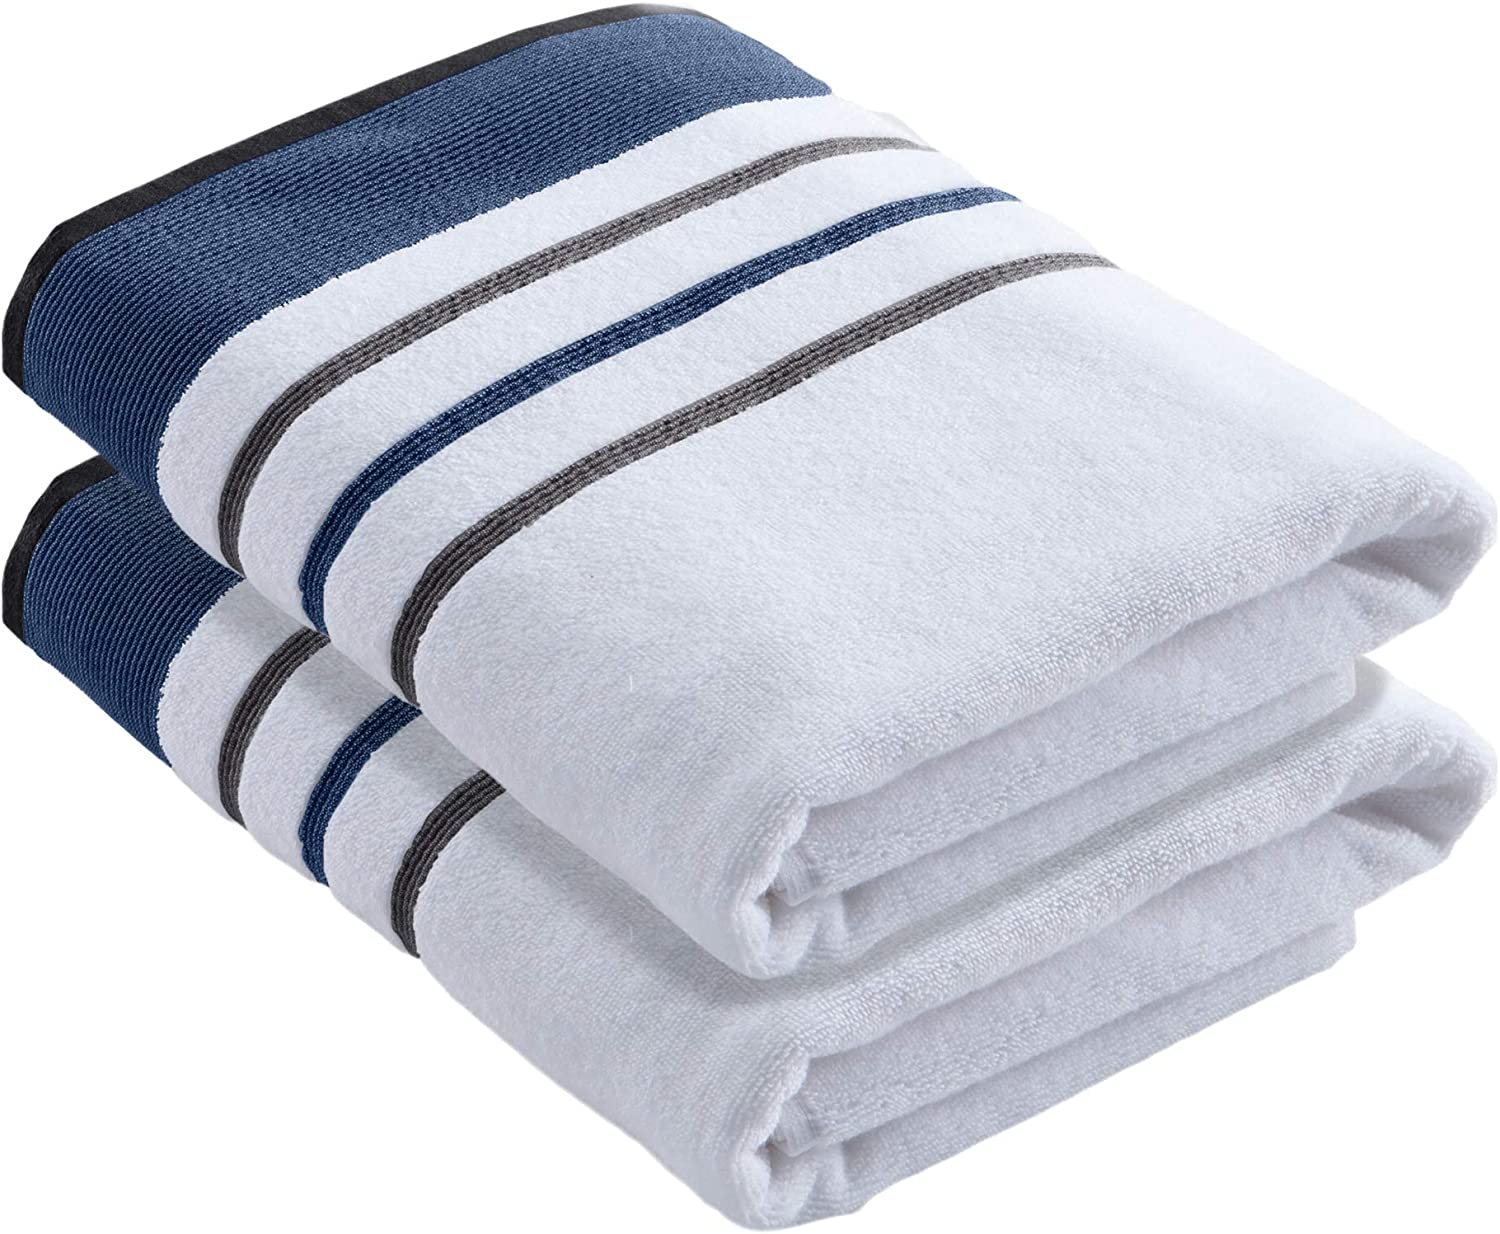 Turkish Cotton, Striped Bath Towel Set (30 x 54 inches) Oversized and Absorbent Luxury Quick-Dry Towels. Noelle Collection (Set of 2, Moroccan Blue / December Sky)